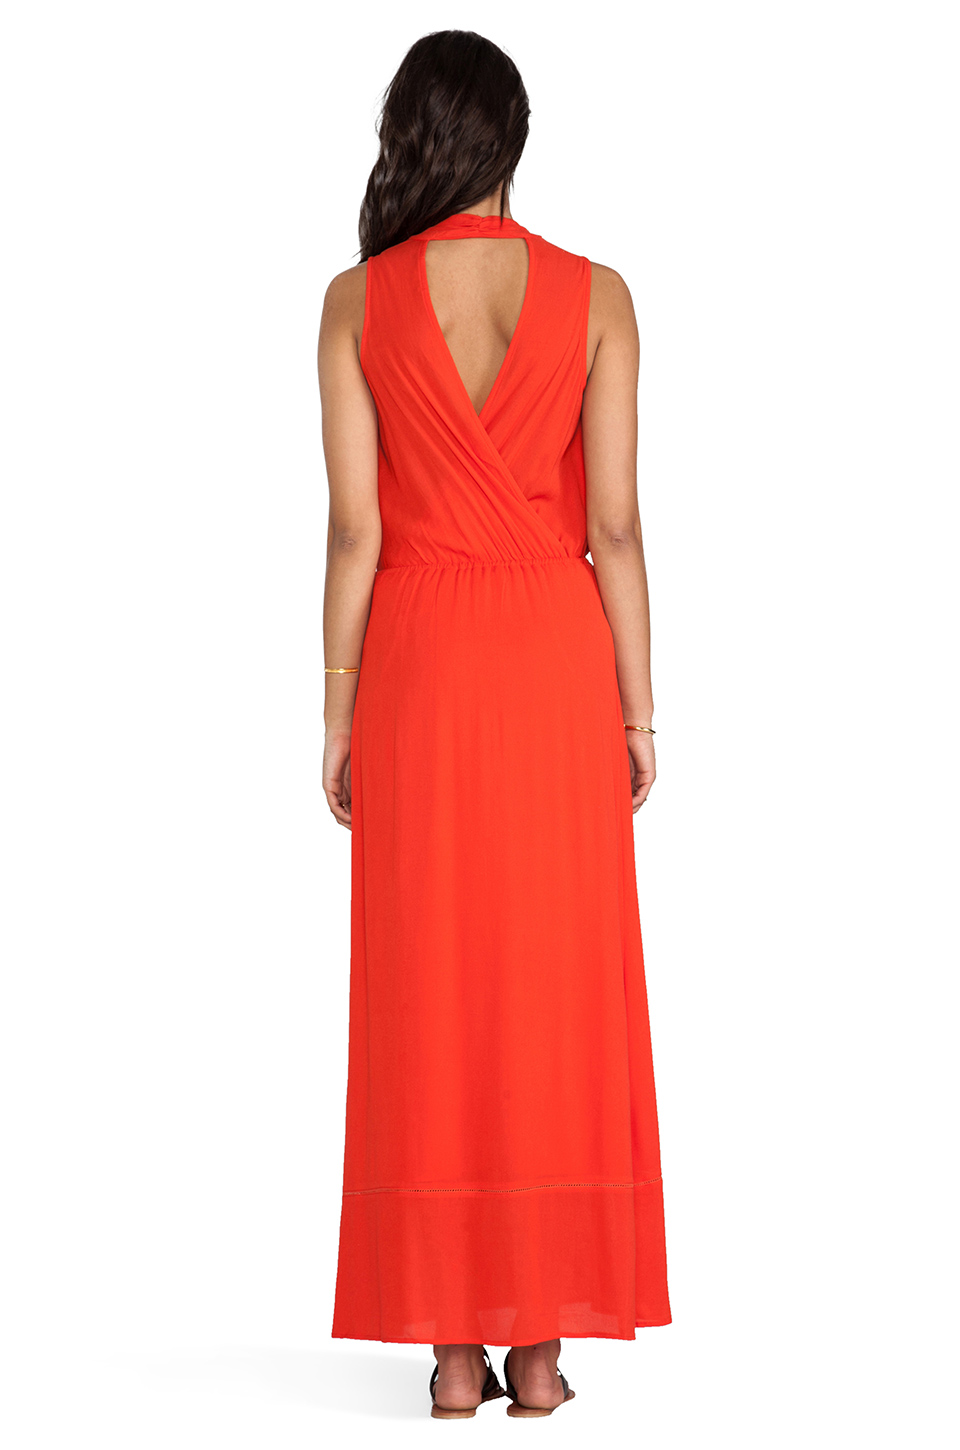 Ella Moss Stella Maxi Dress in Tomato